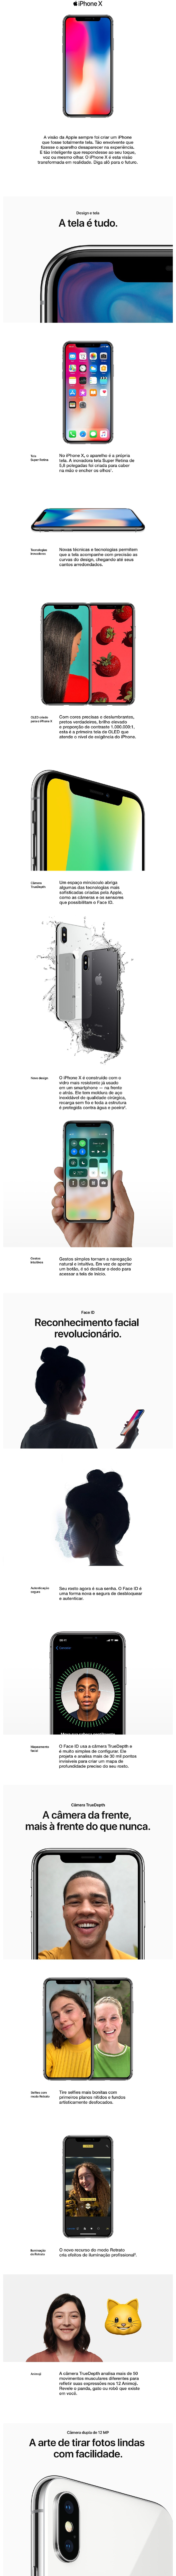 Iphone X branco 256gb novo